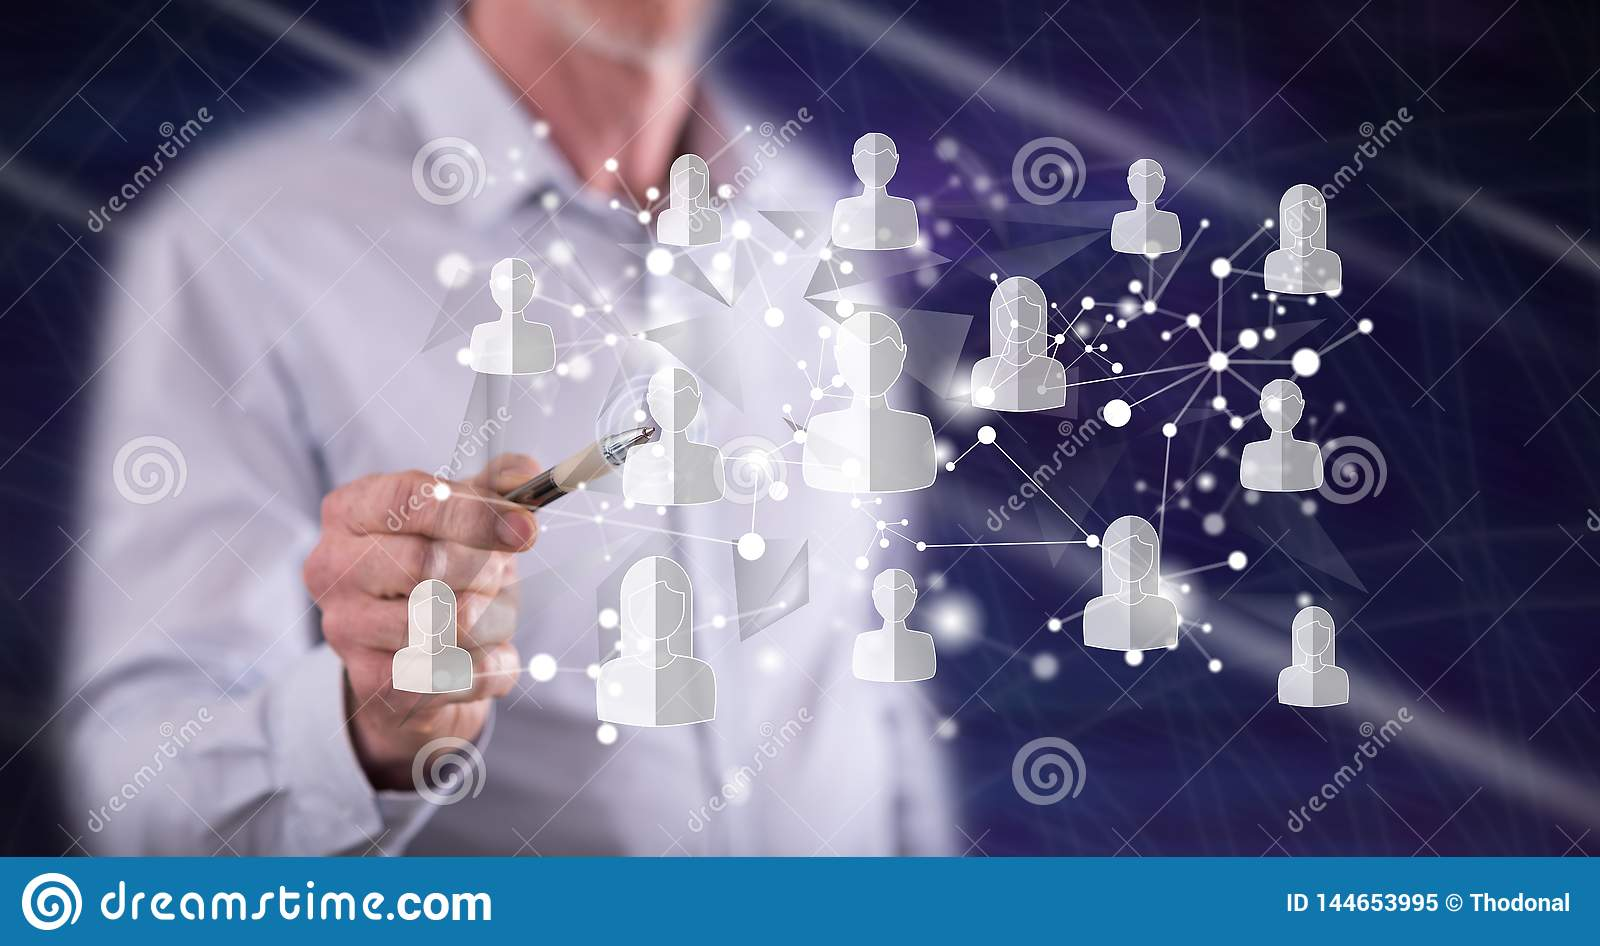 Man touching a social media network concept